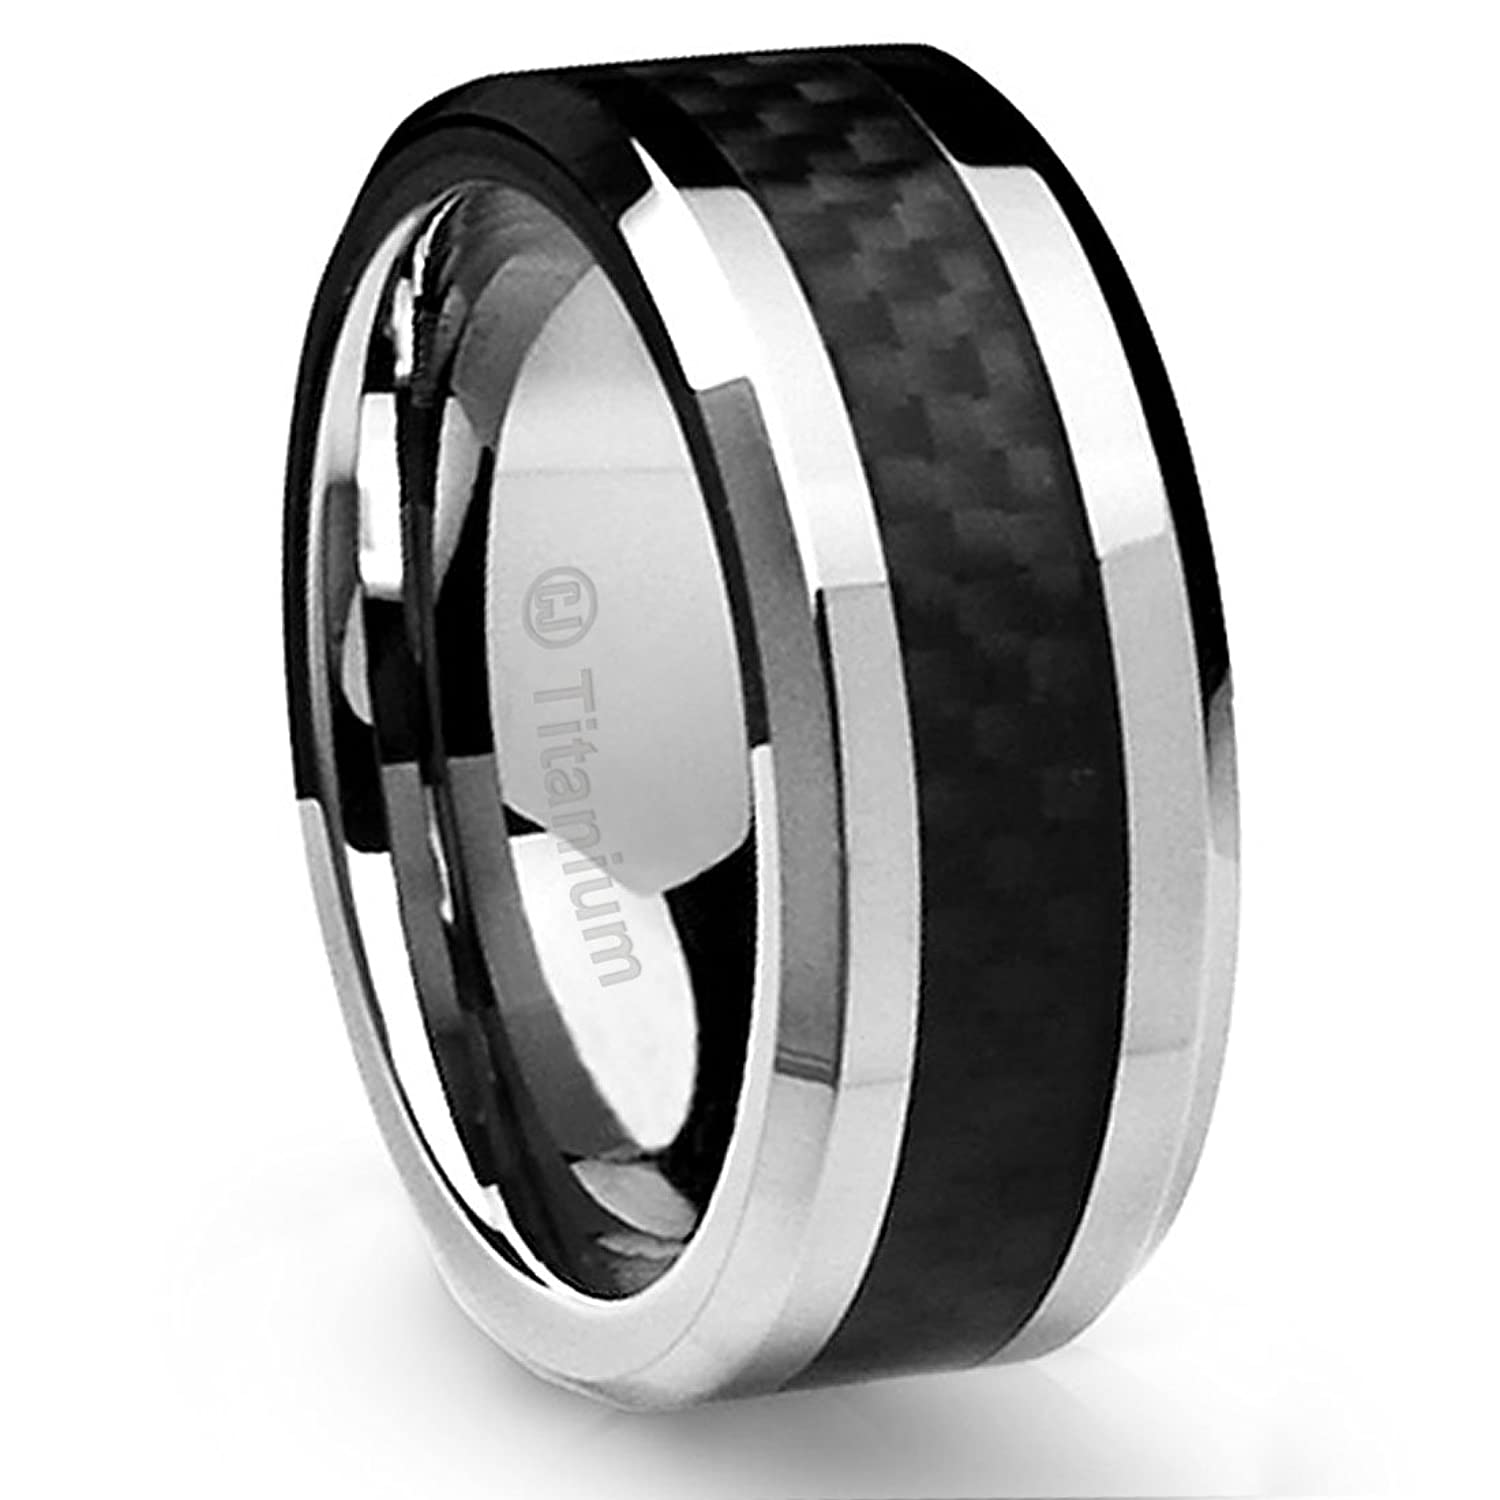 orders wedding s mens design watches over jewelry rings product on ring cubic men fit oliveti band zirconia and shipping overstock fiber black carbon titanium dragon with free comfort